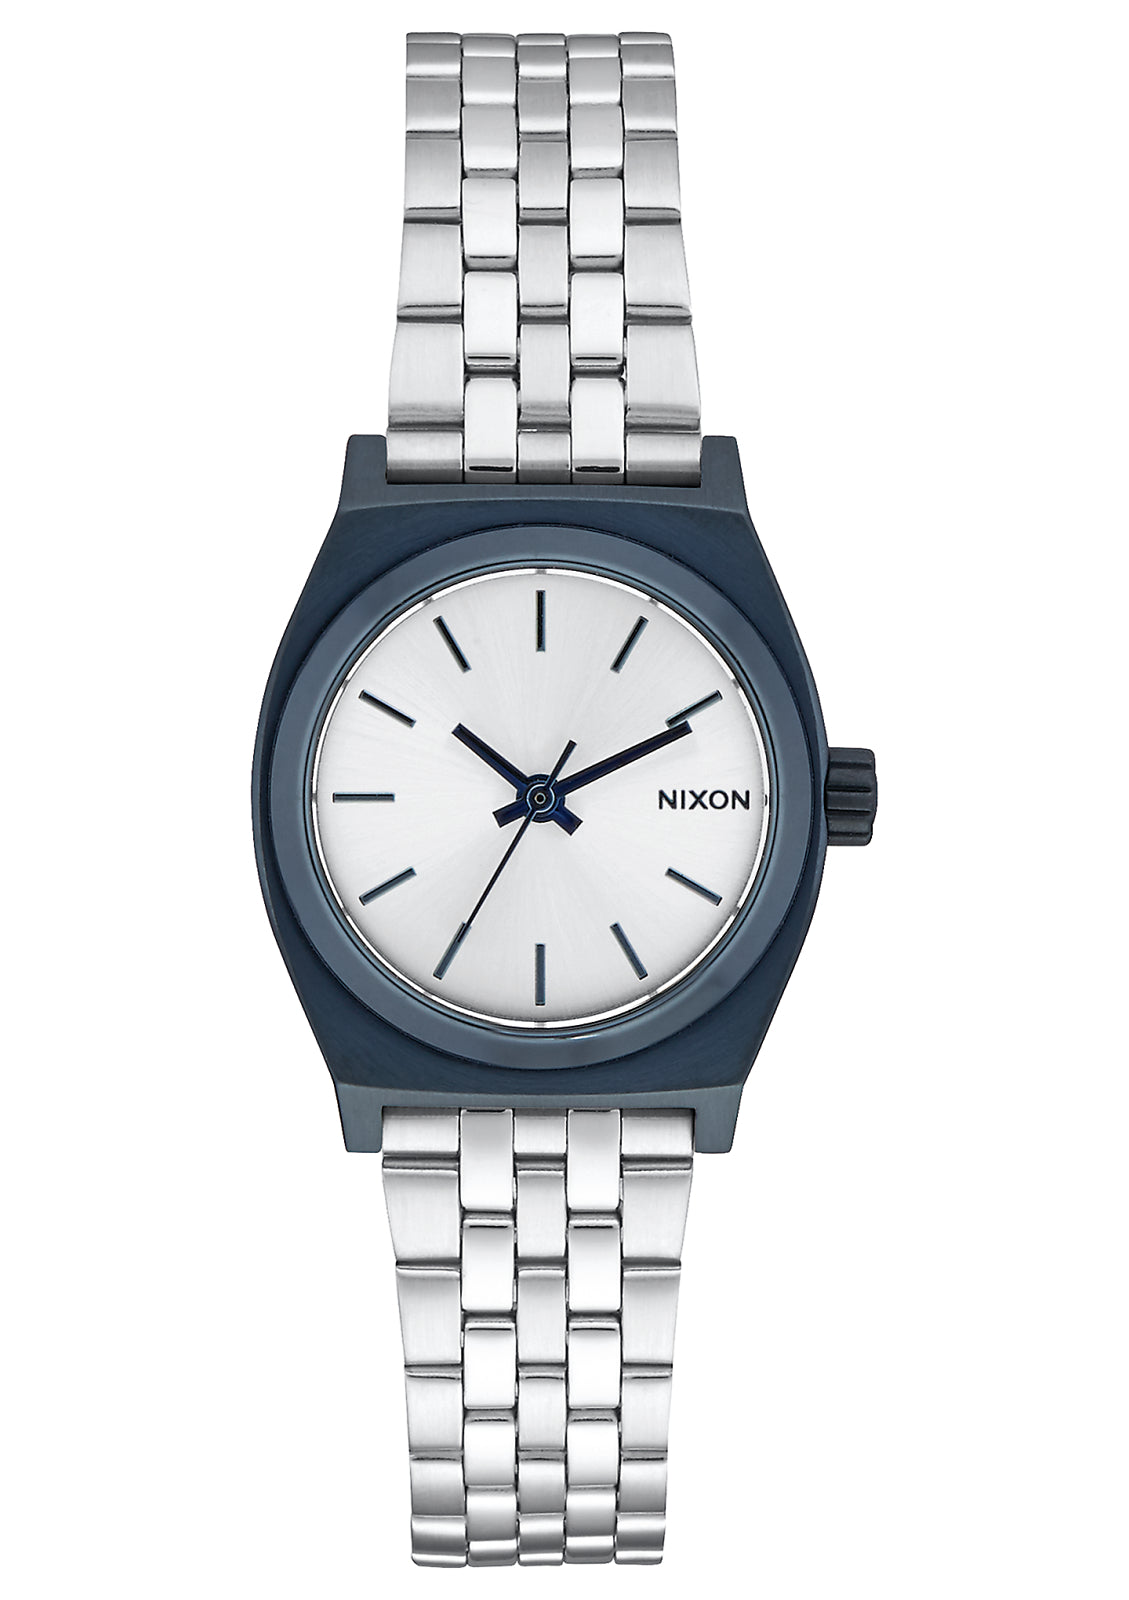 NIXON SMALL TIME TELLER NAVY/SILVER WATCH